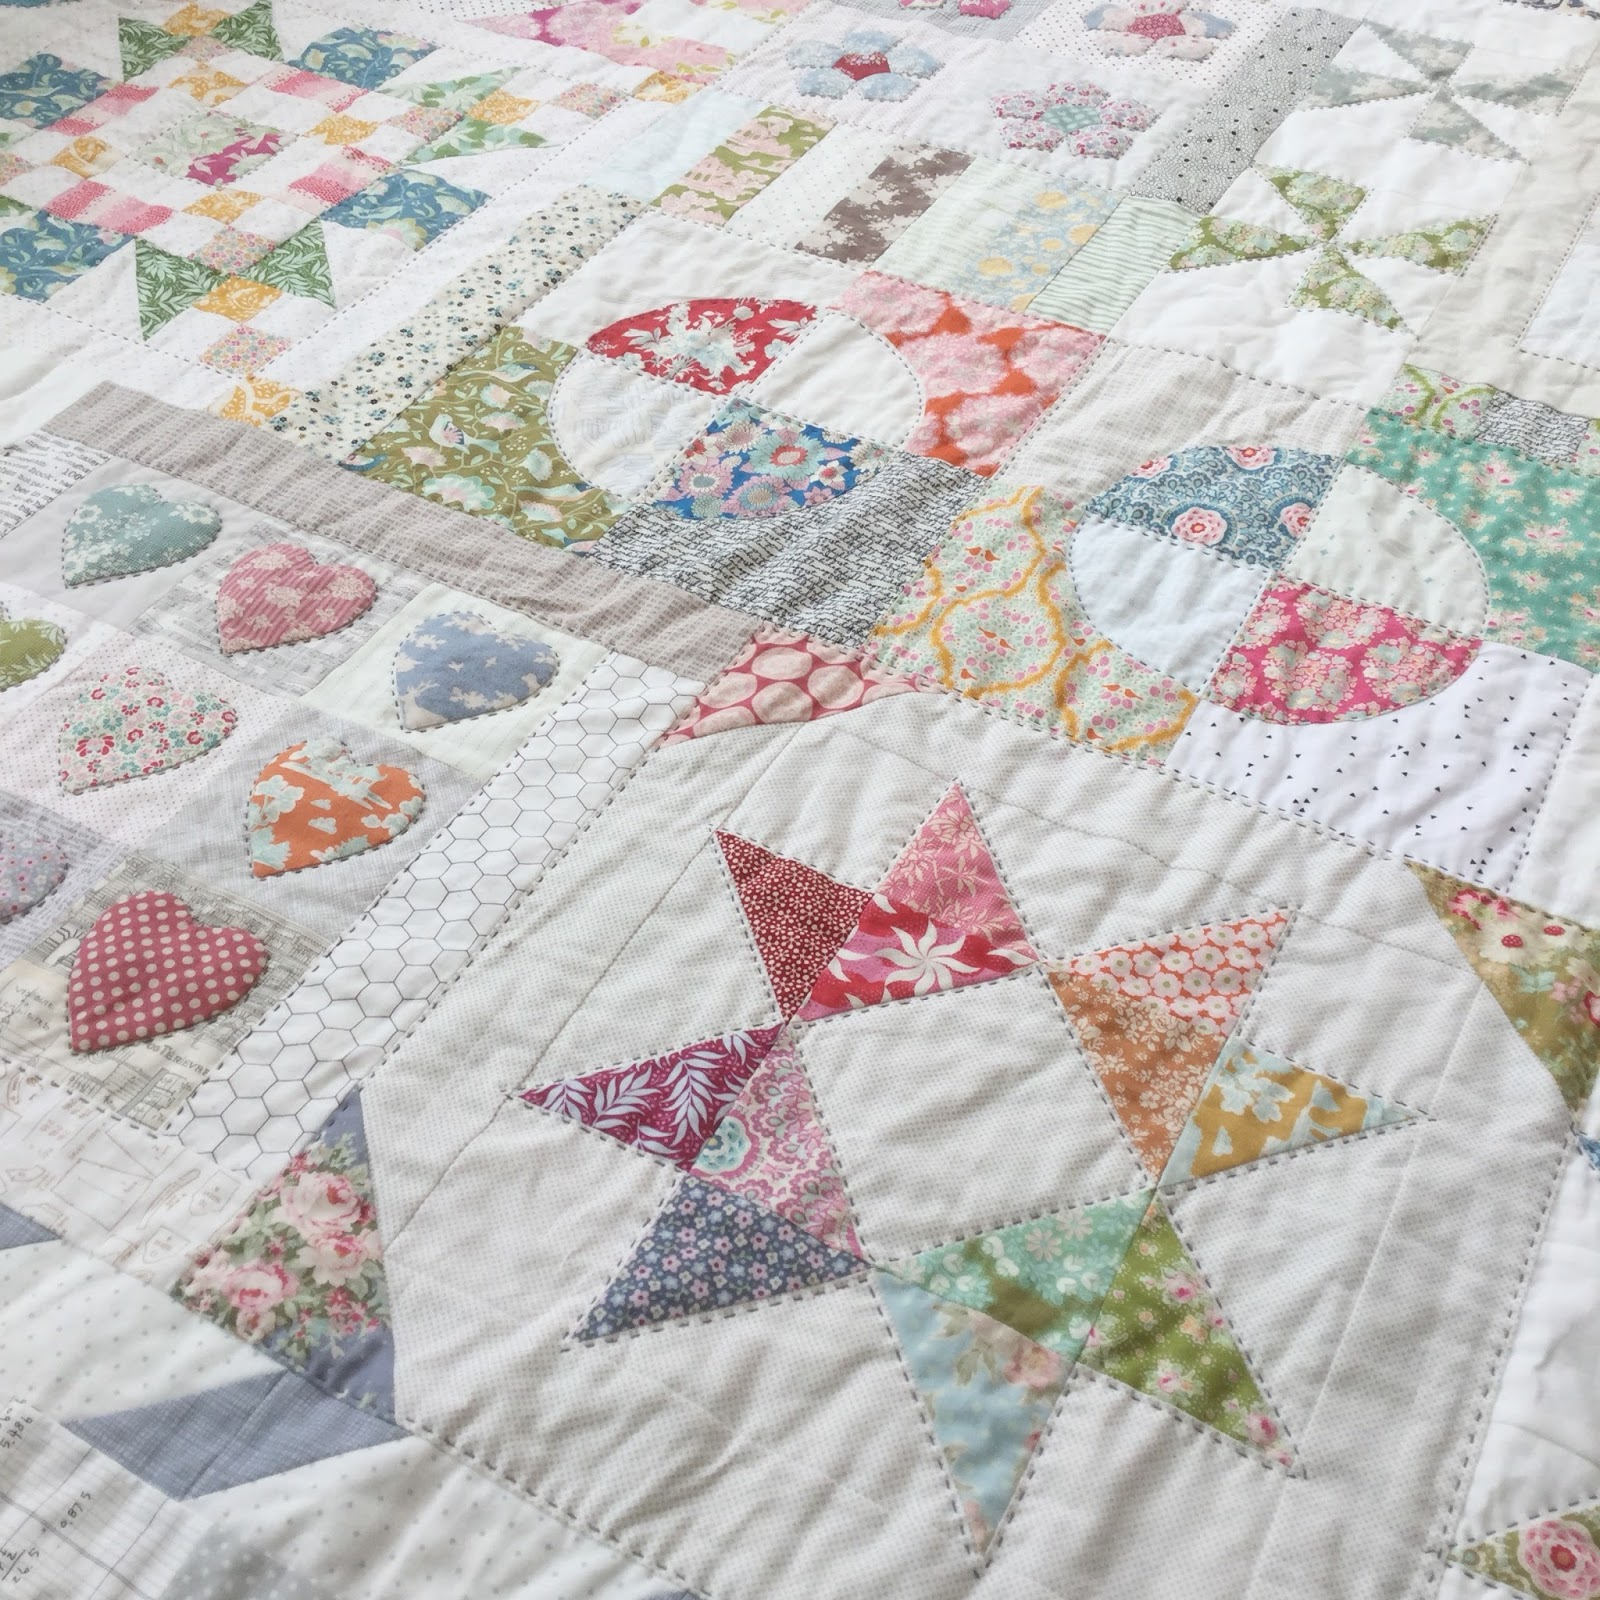 Quilt Block Of The Month Club Com.A Little Happy Place Introducing Our New Block Of The Month